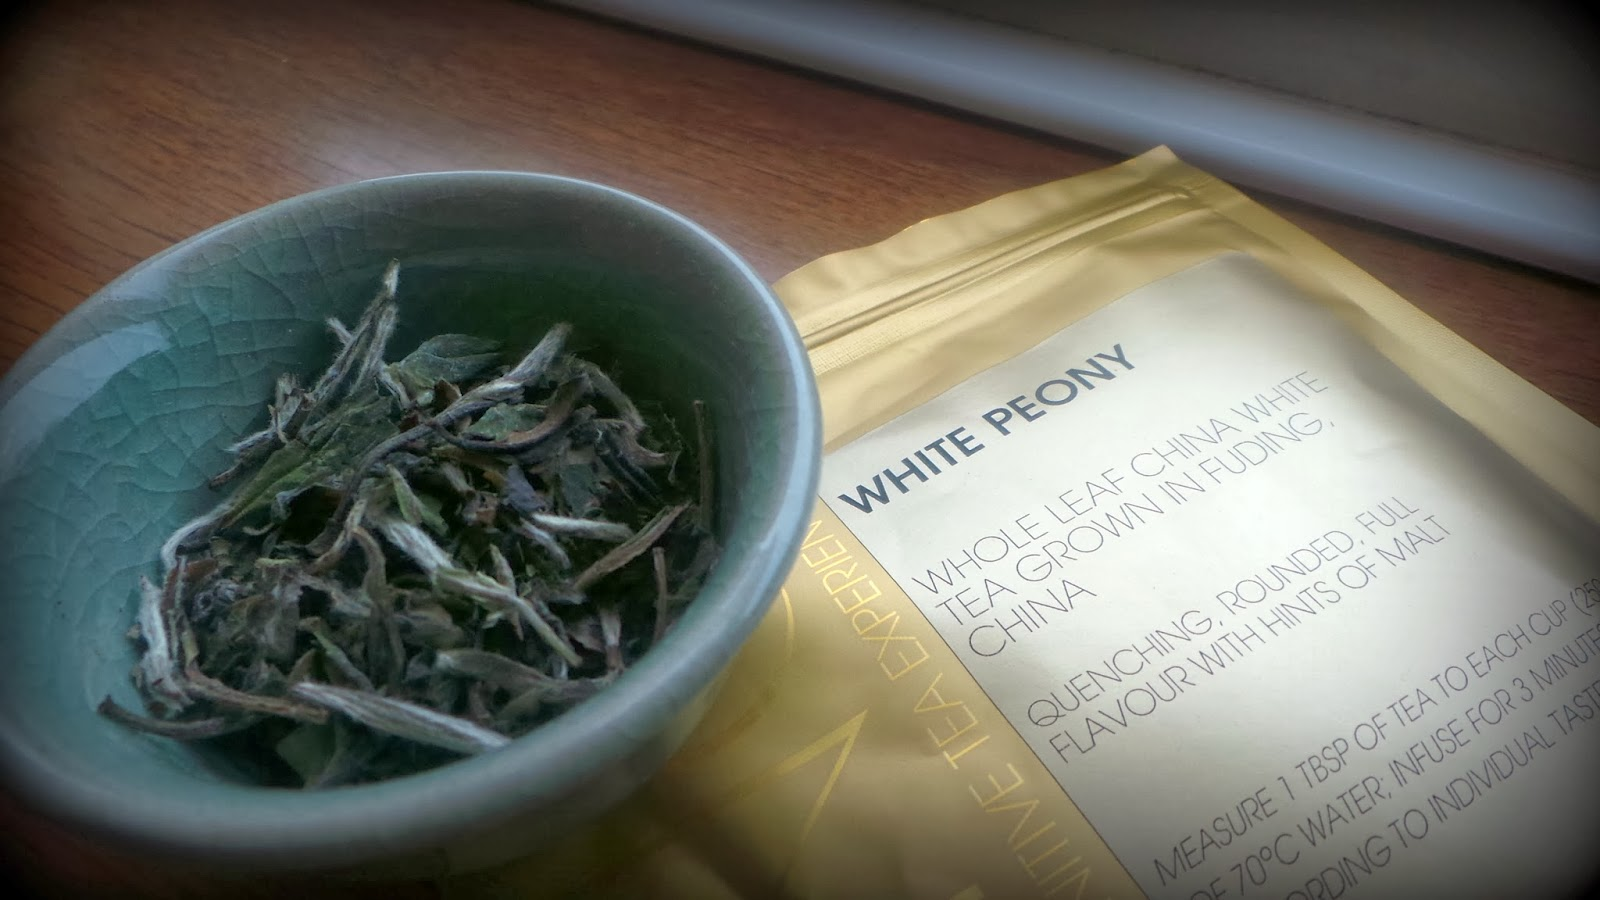 Jing white tea